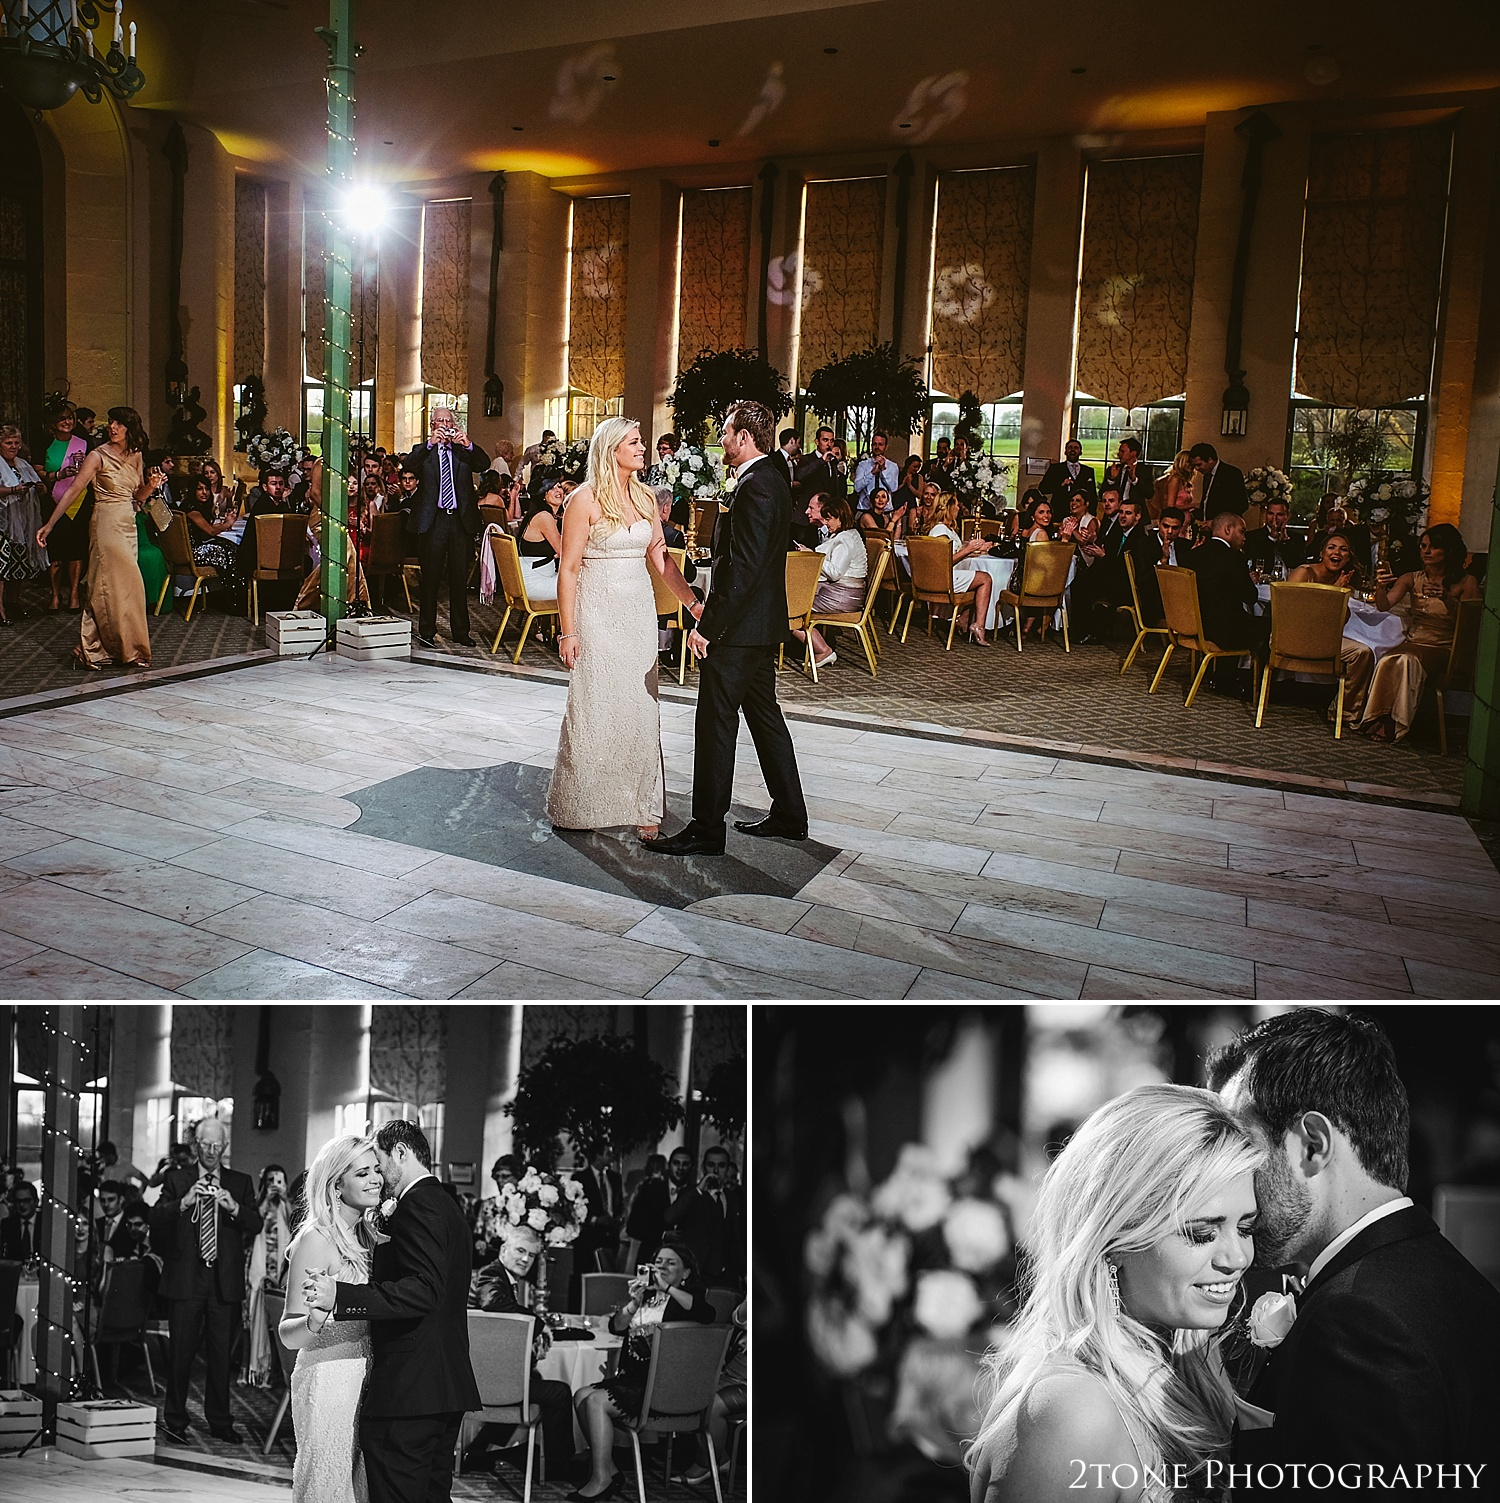 First dance at Wynyard Hall.  Wynyard Hall wedding photography by www.2tonephotography.co.uk